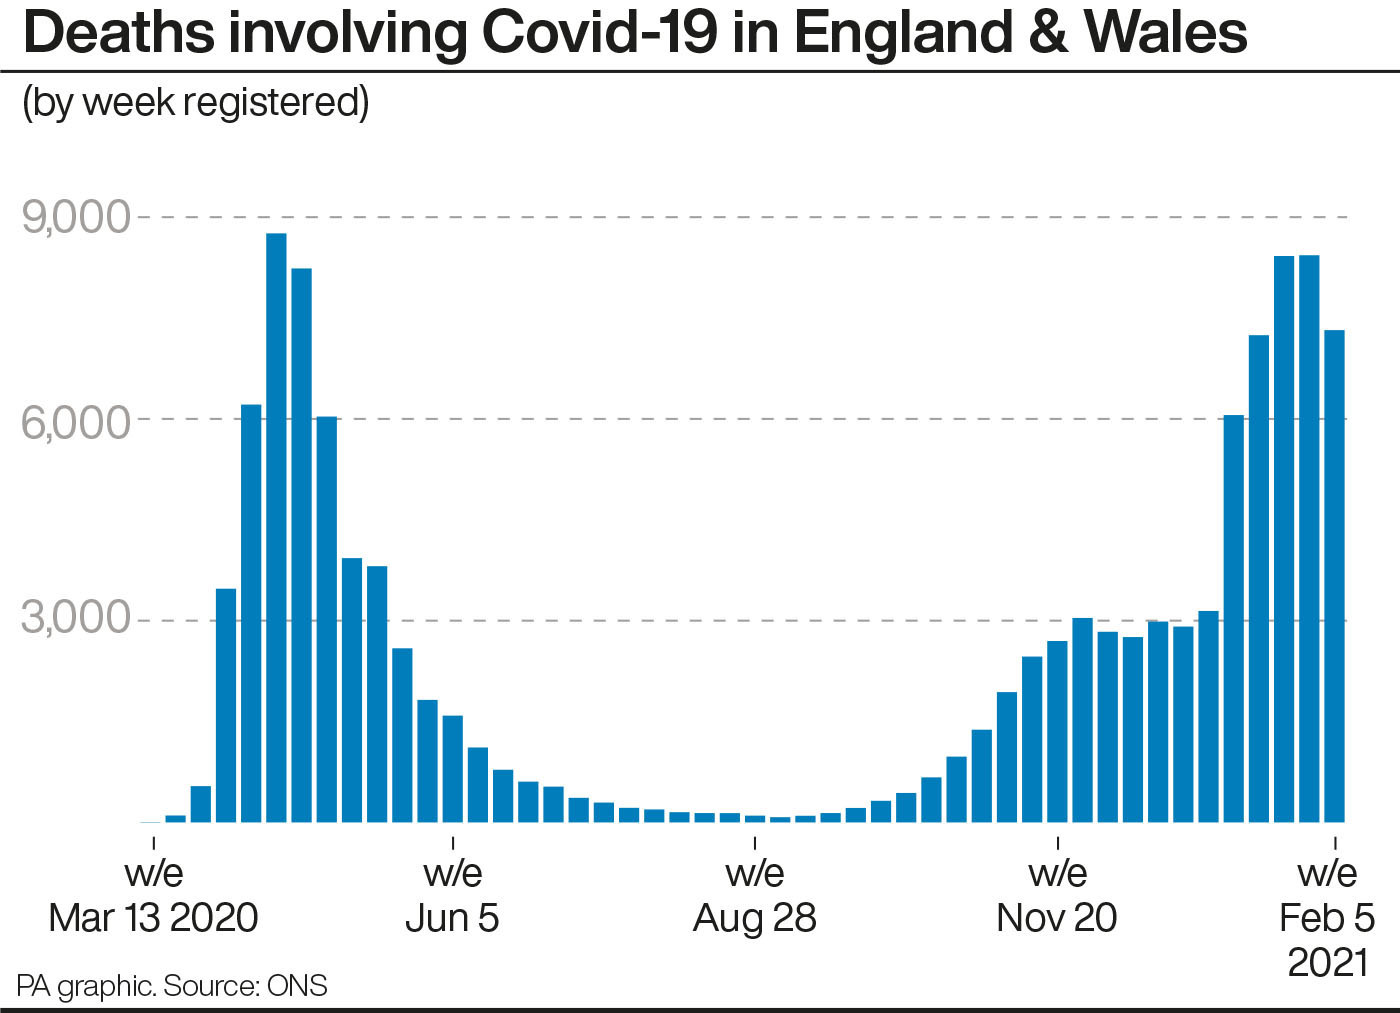 Deaths involving Covid-19 in England & Wales. See story HEALTH Coronavirus ONS. Infographic PA Graphics. An editable version of this graphic is available if required. Please contact graphics@pamediagroup.com.